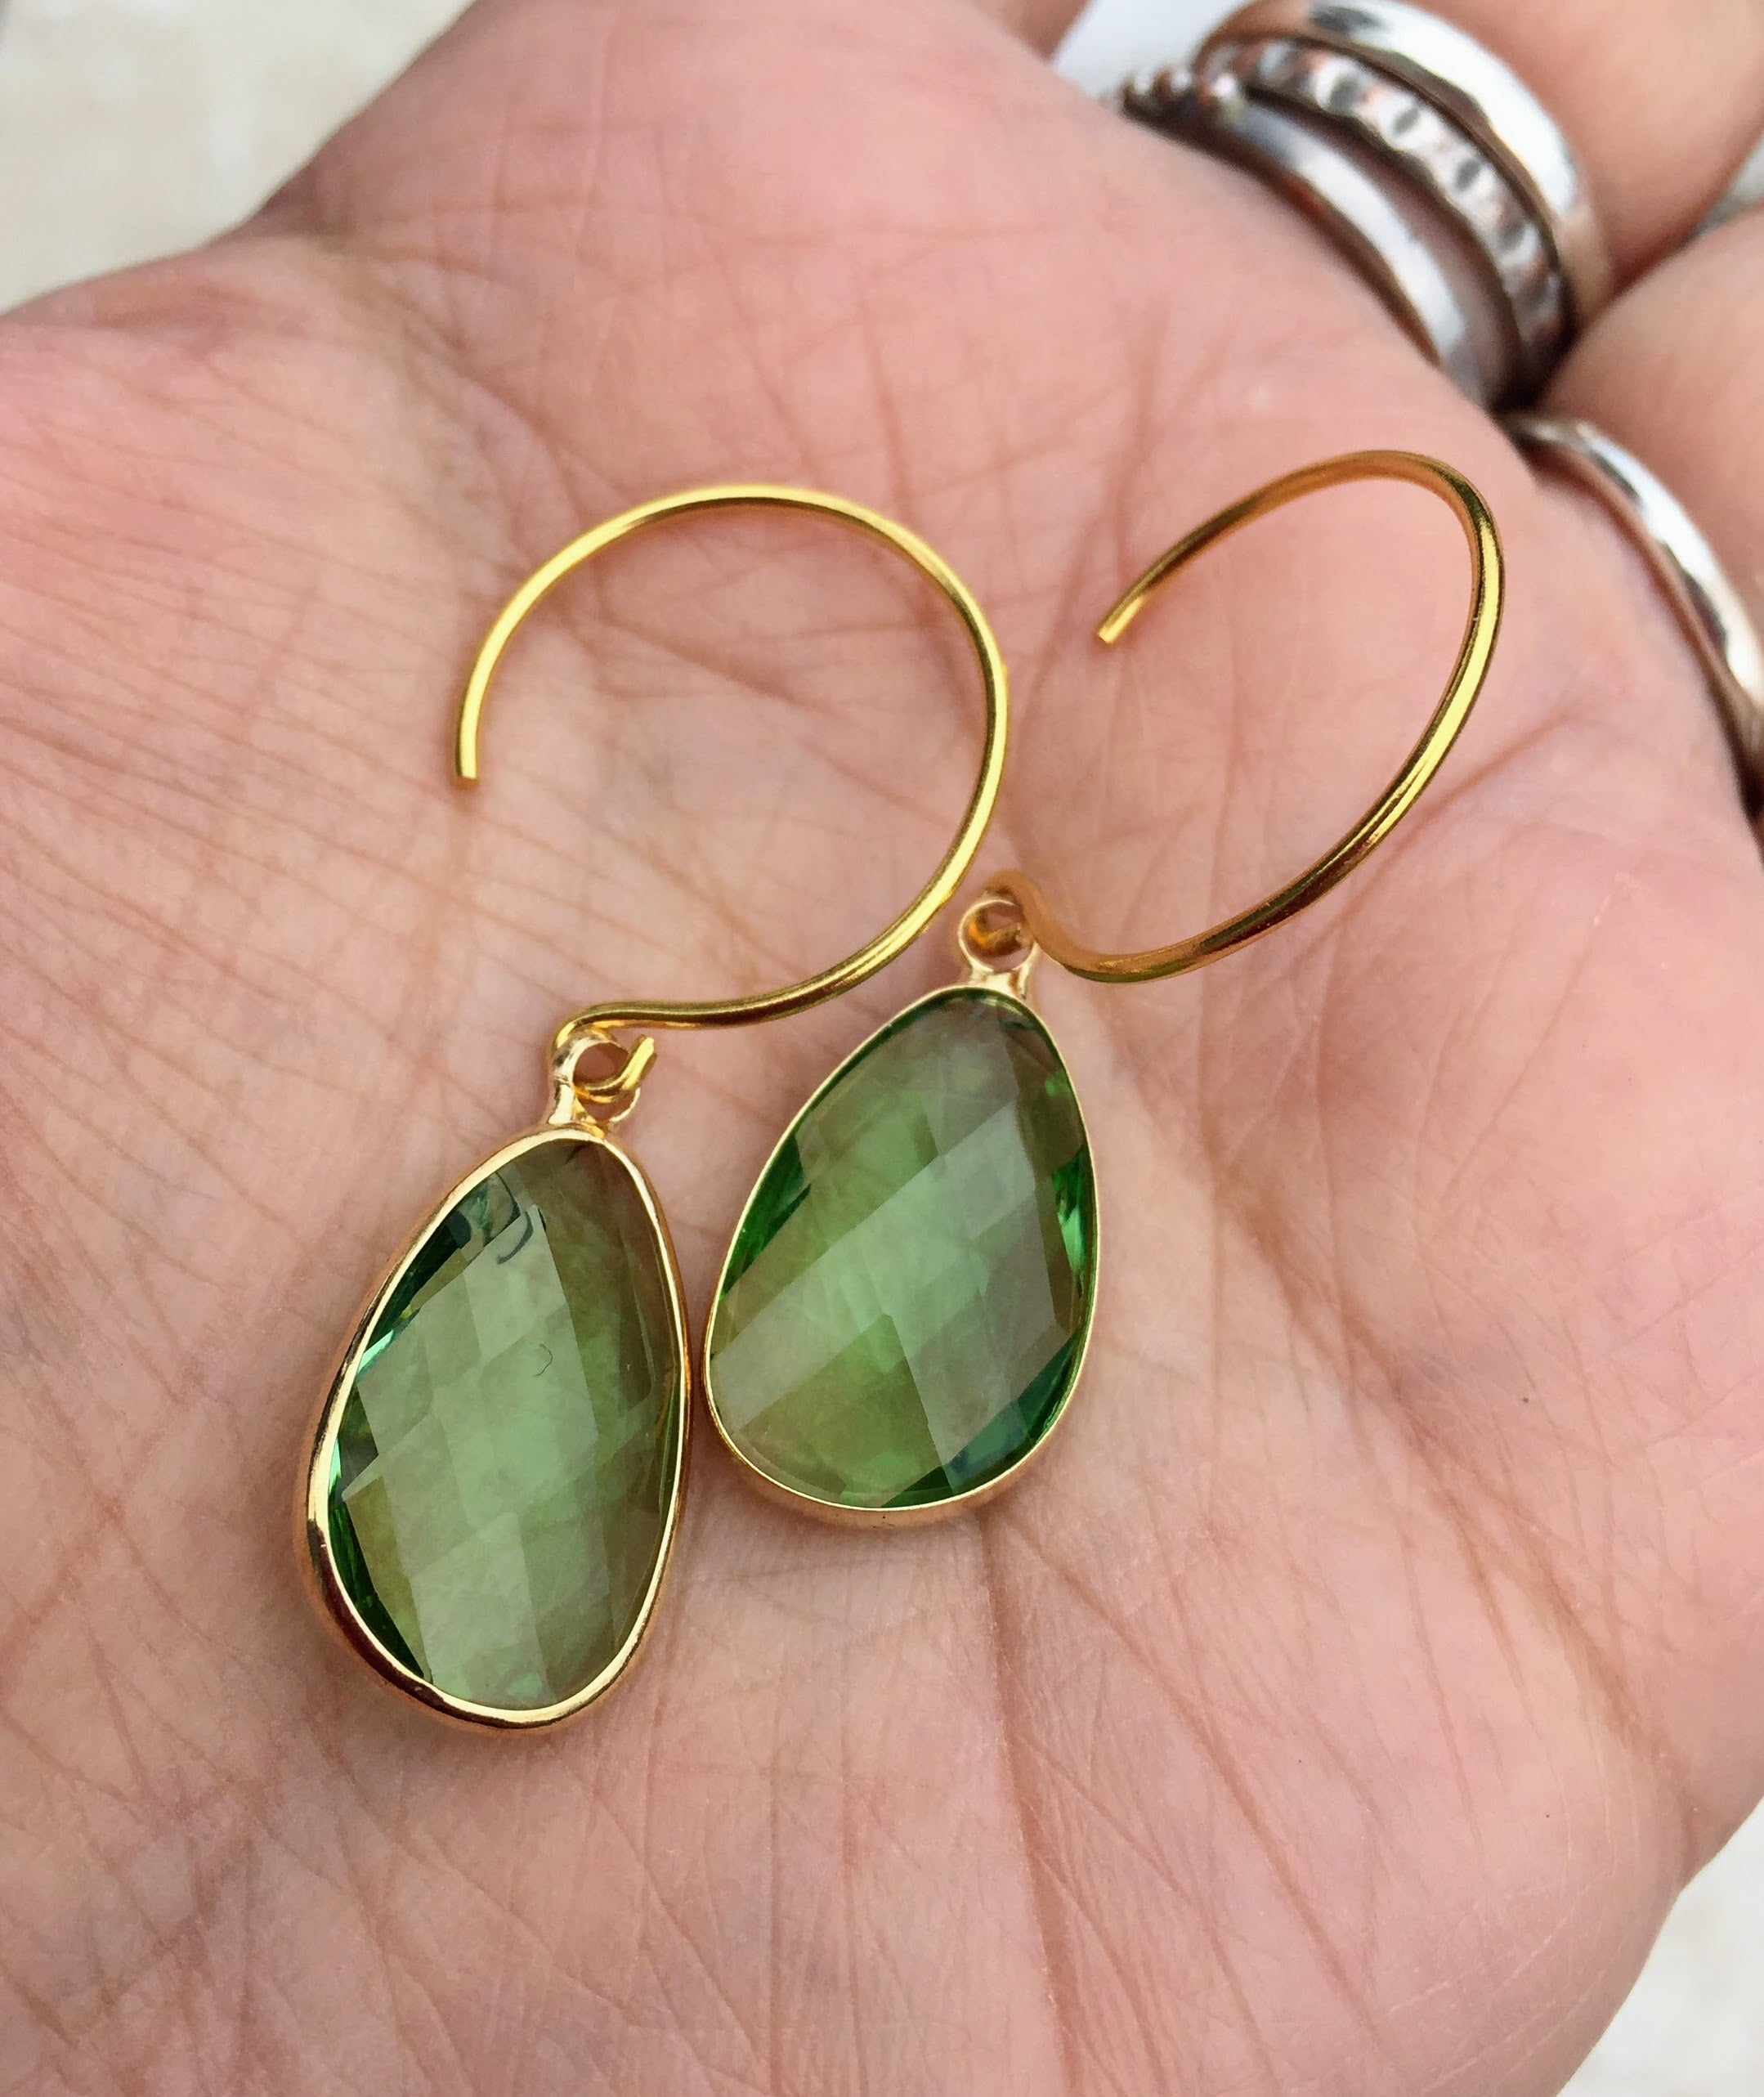 stone product ellie green earrings kendra scott gold normal in stud oval jewelry lyst